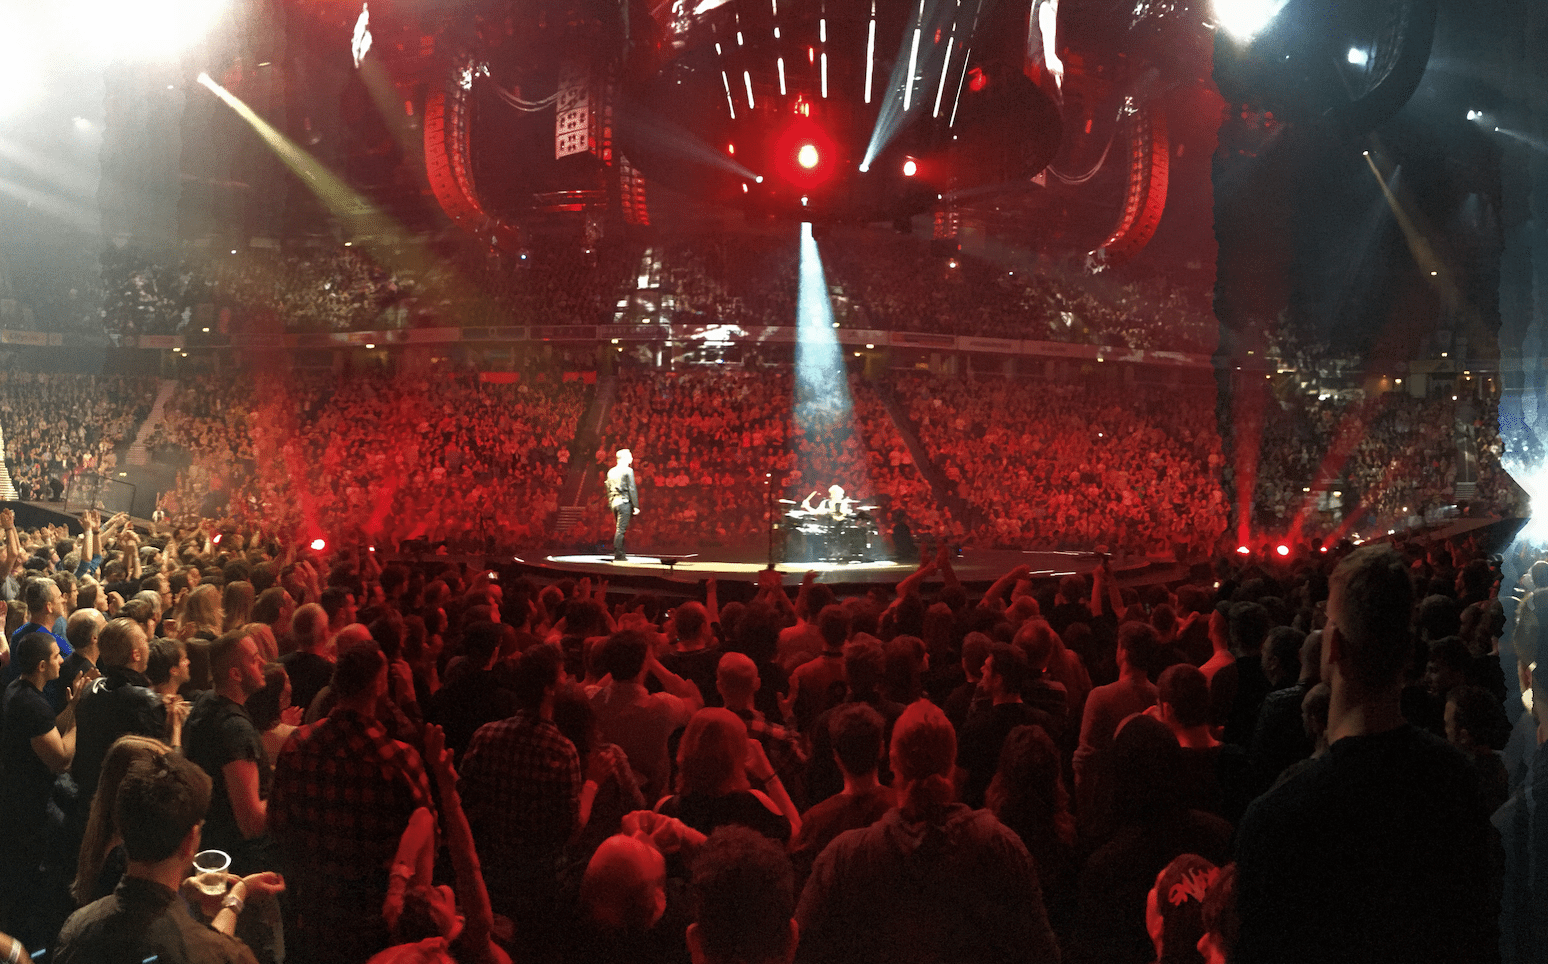 Muse performing at Manchester Arena for their Drones World Tour on 9 April 2016.